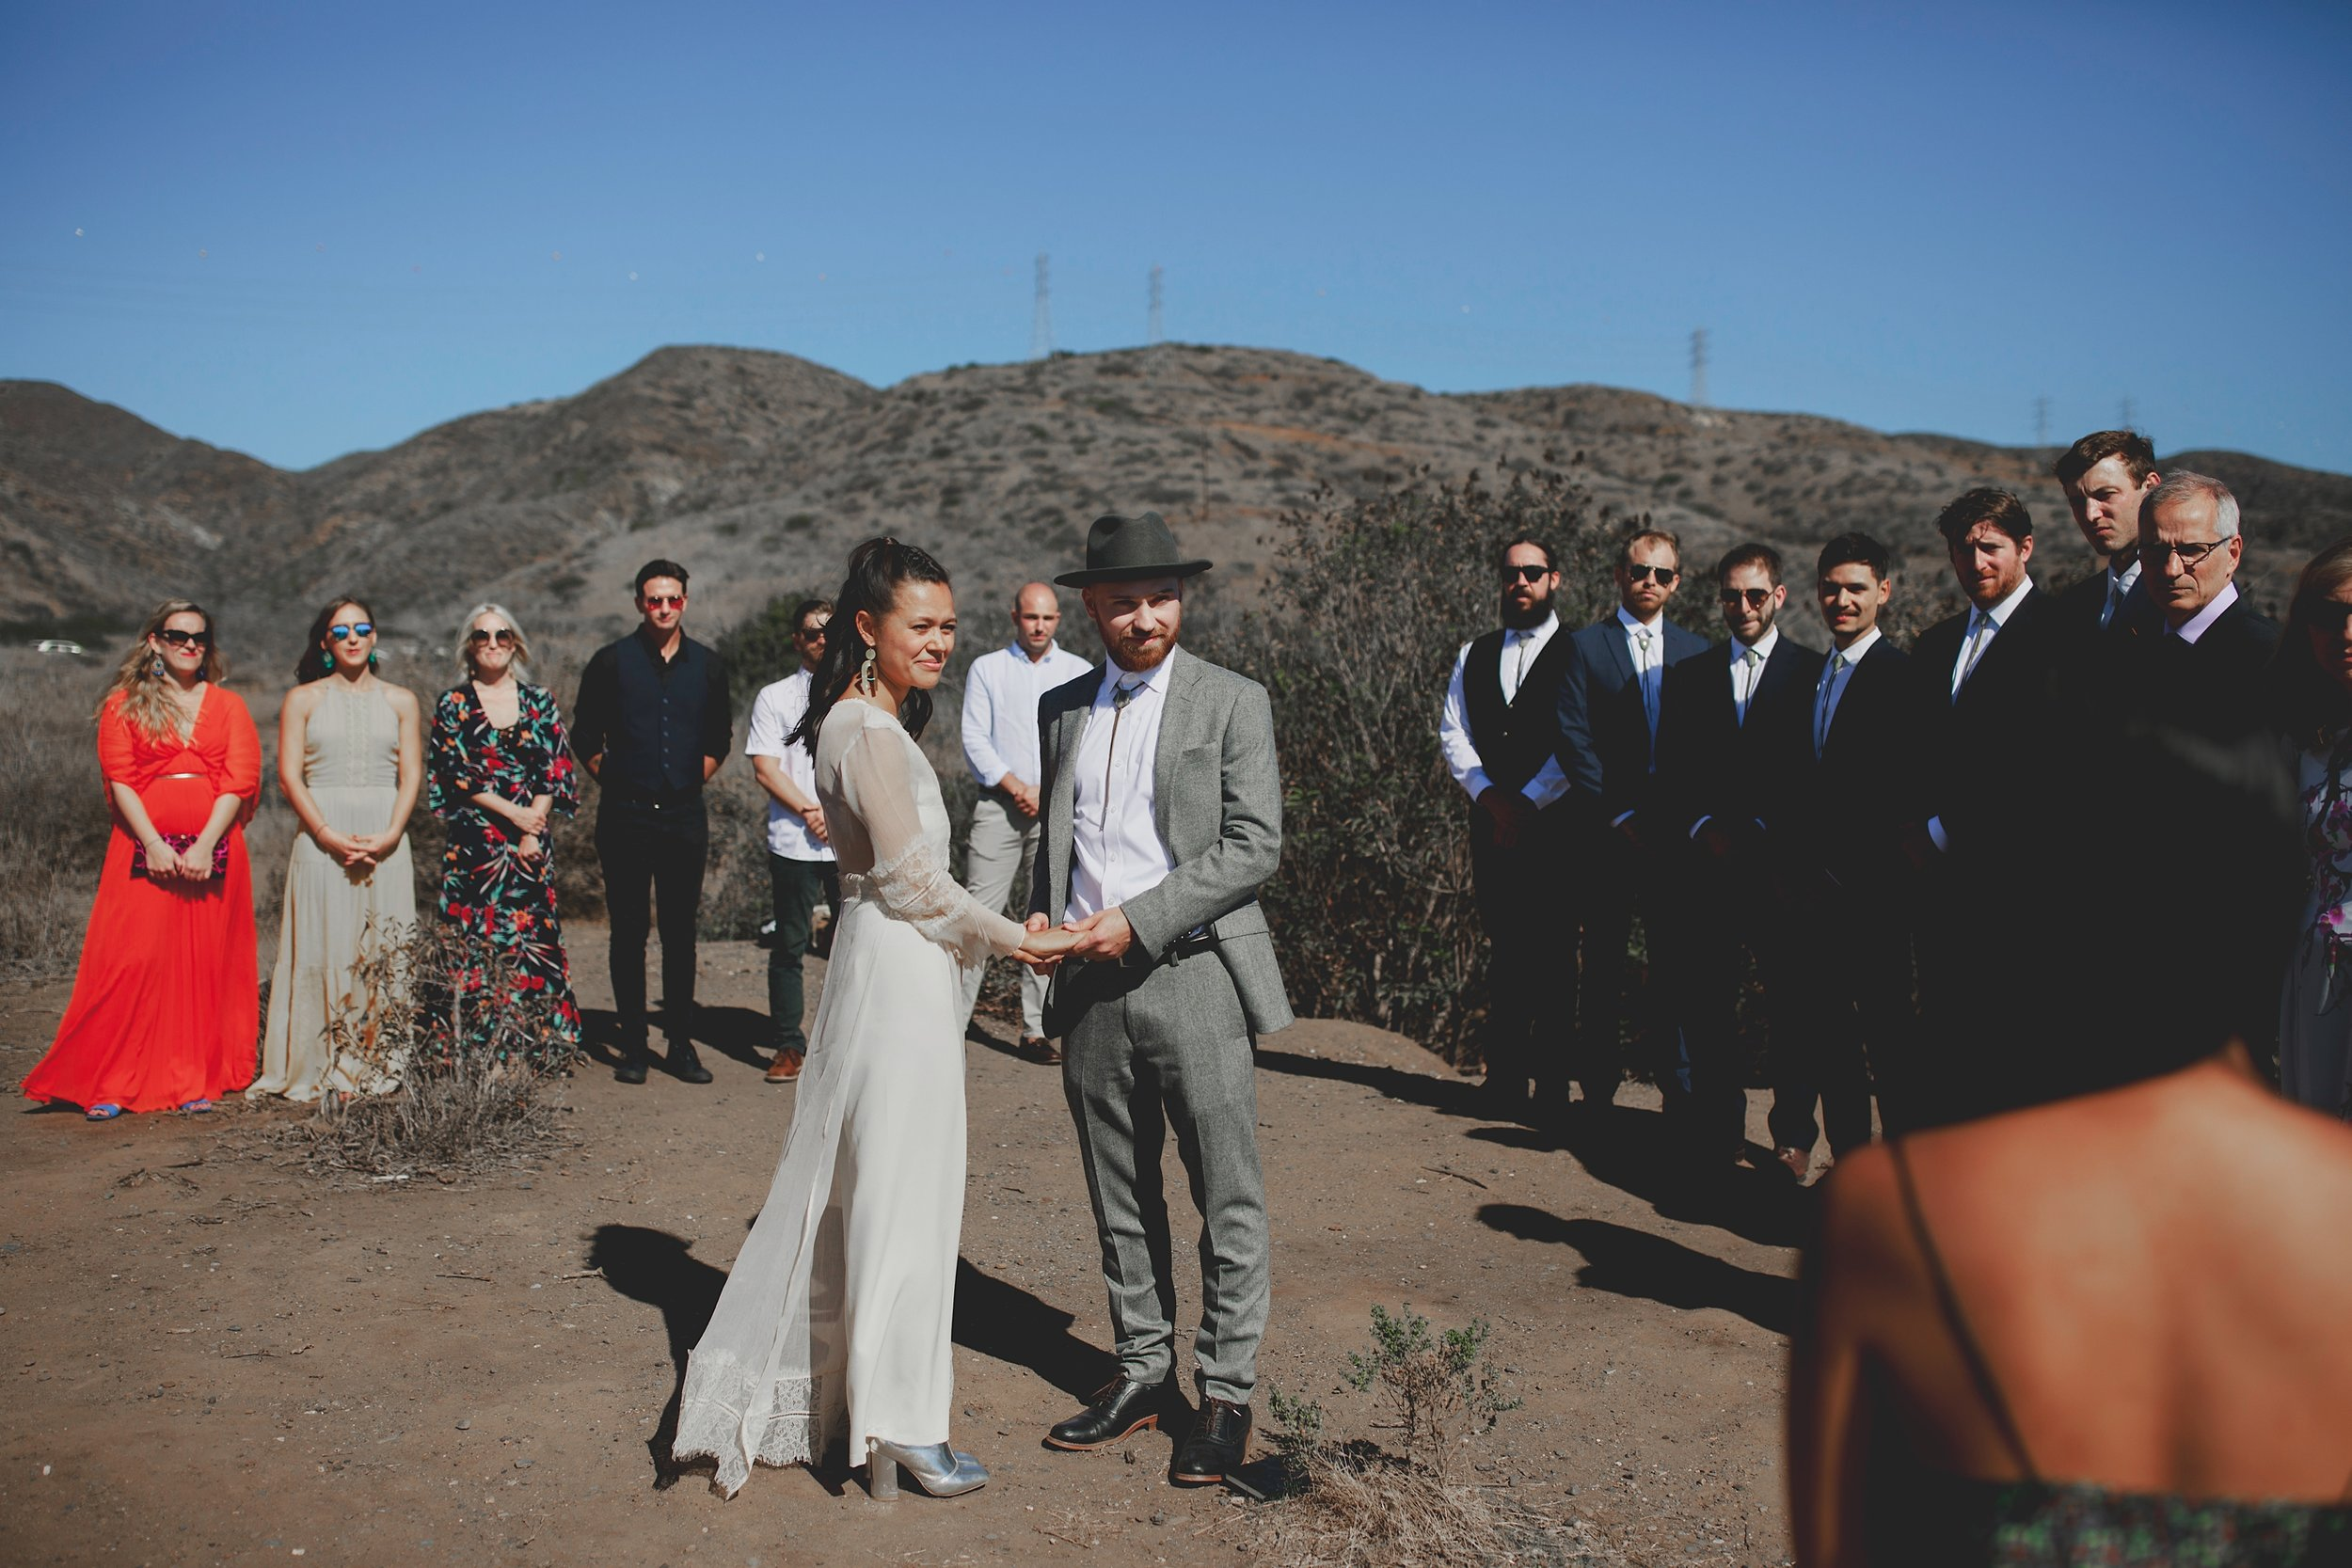 amanda_vanvels_san_onofre_wedding_eco_friendly_038.jpg